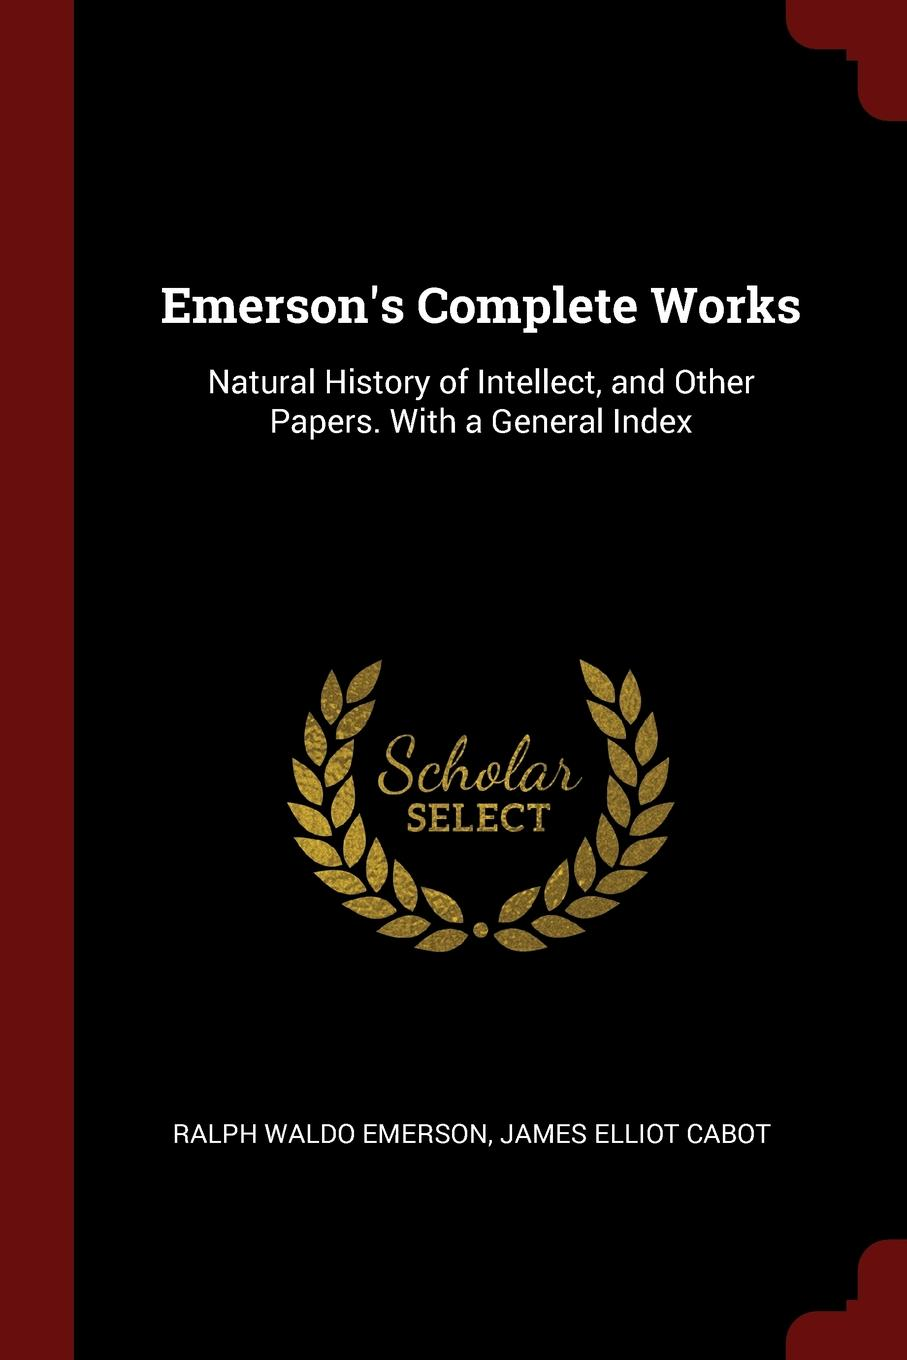 Ralph Waldo Emerson, James Elliot Cabot Emerson.s Complete Works. Natural History of Intellect, and Other Papers. With a General Index